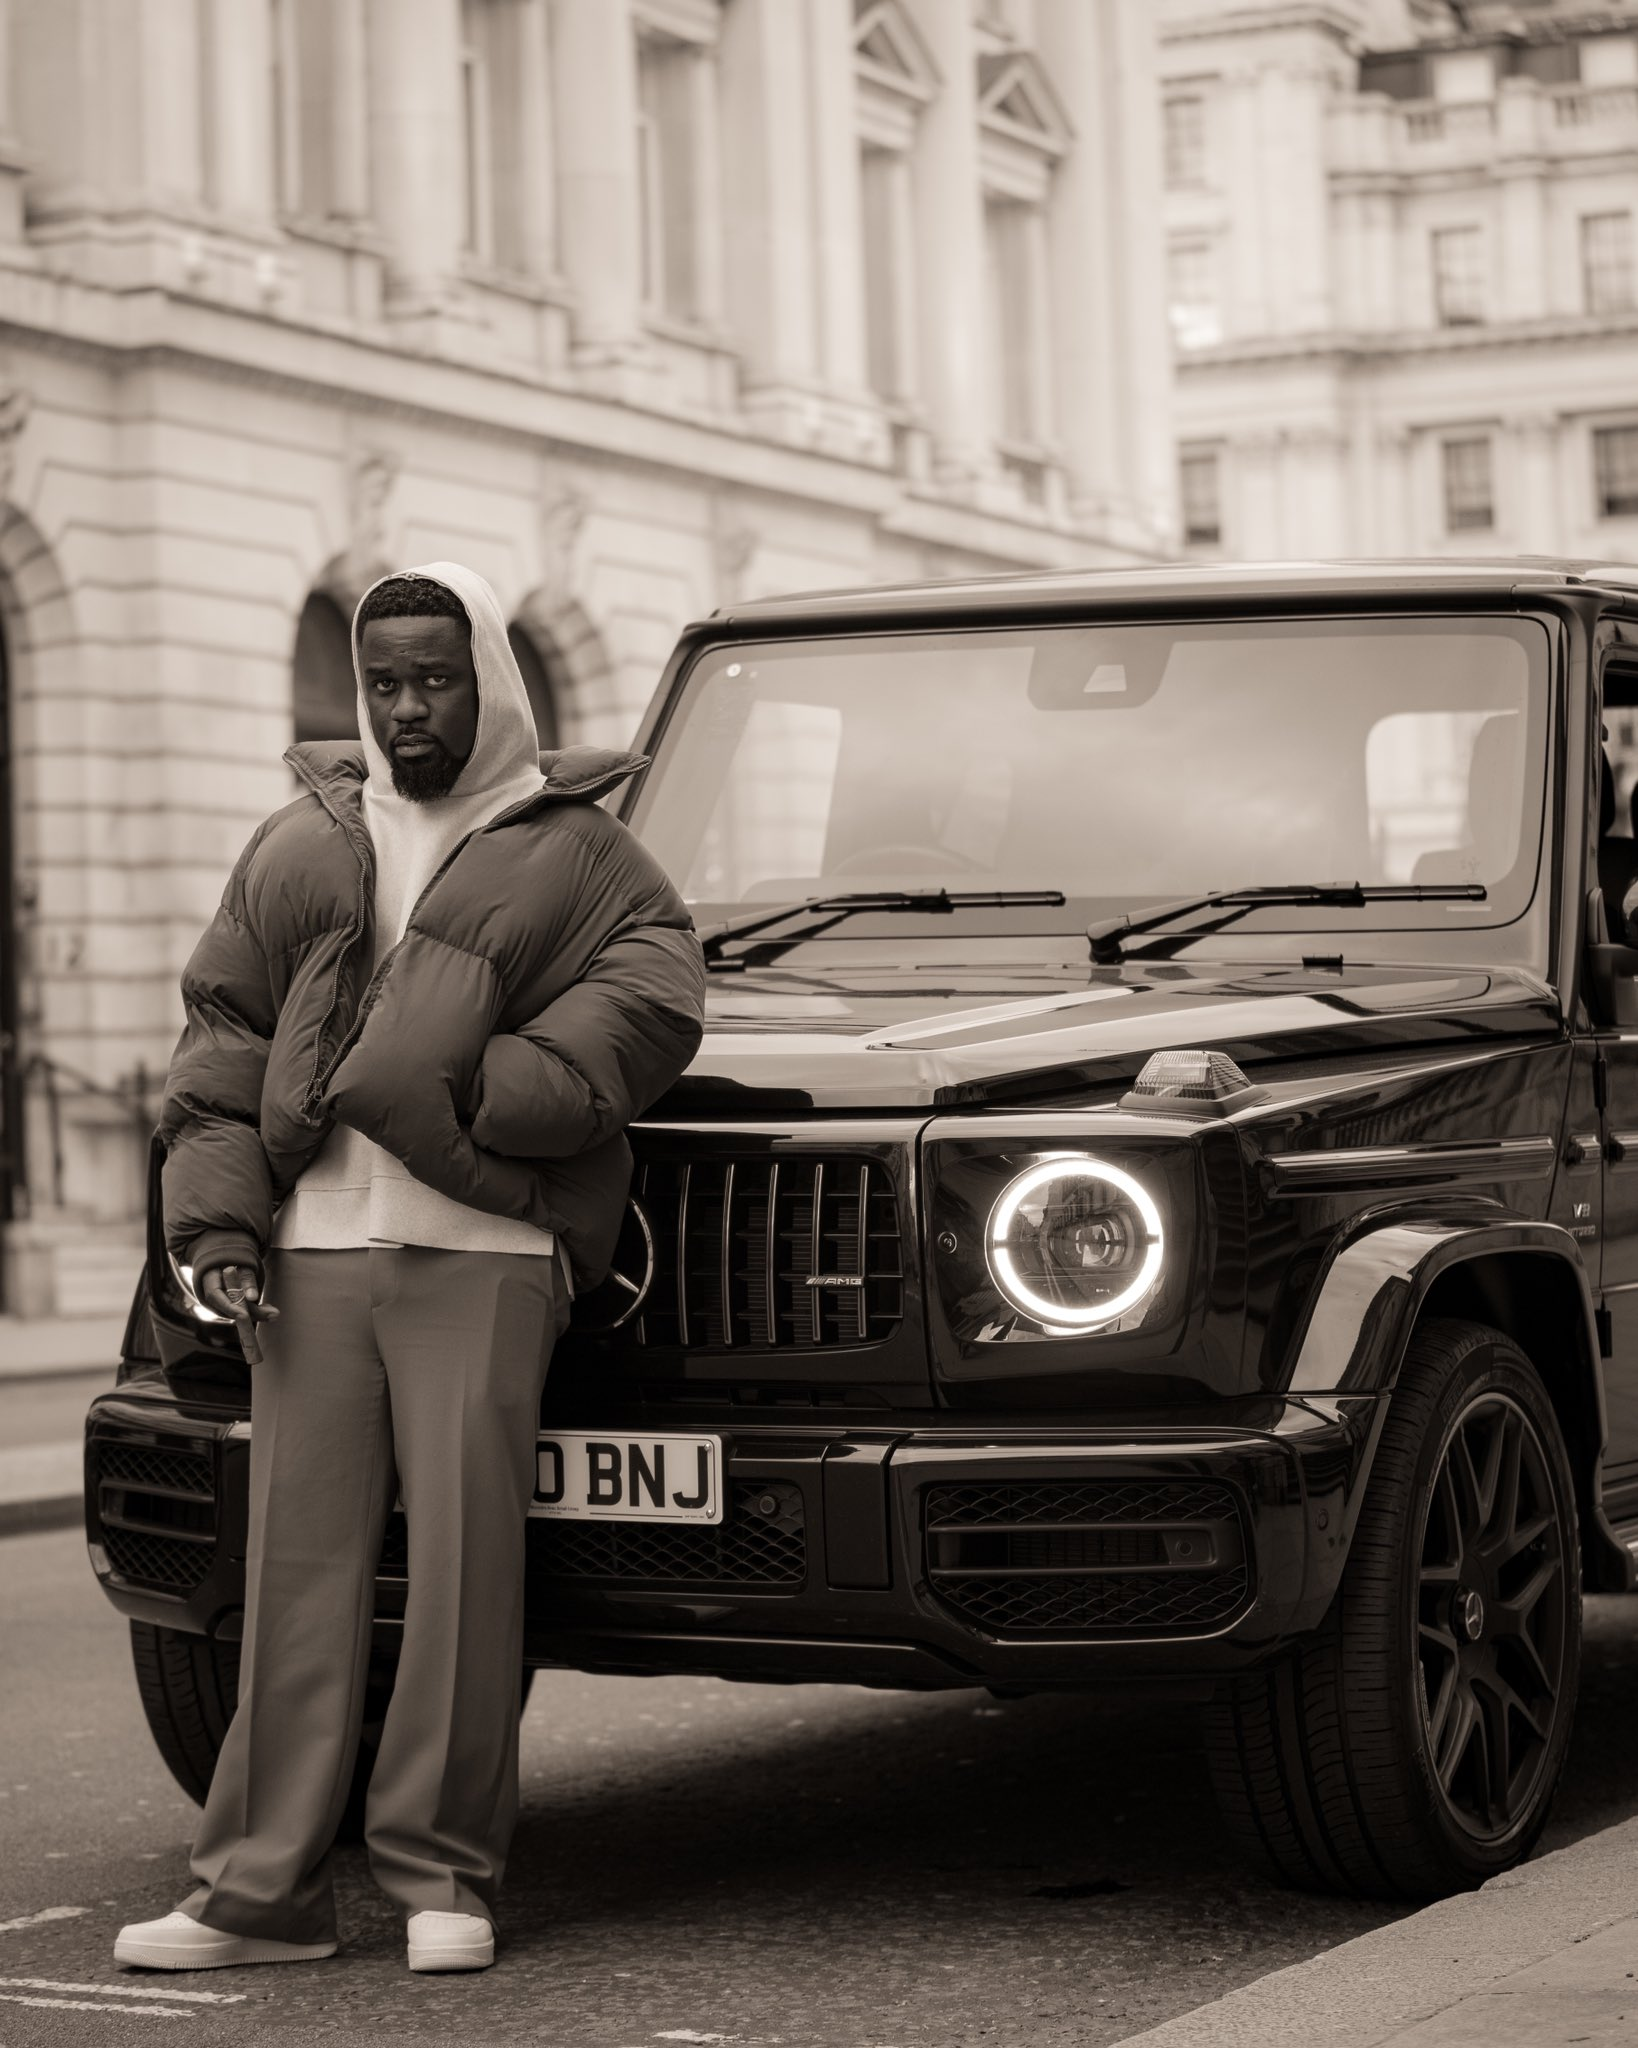 Sarkodie is set to purchase his second mansion within a year - Criss Waddle replied